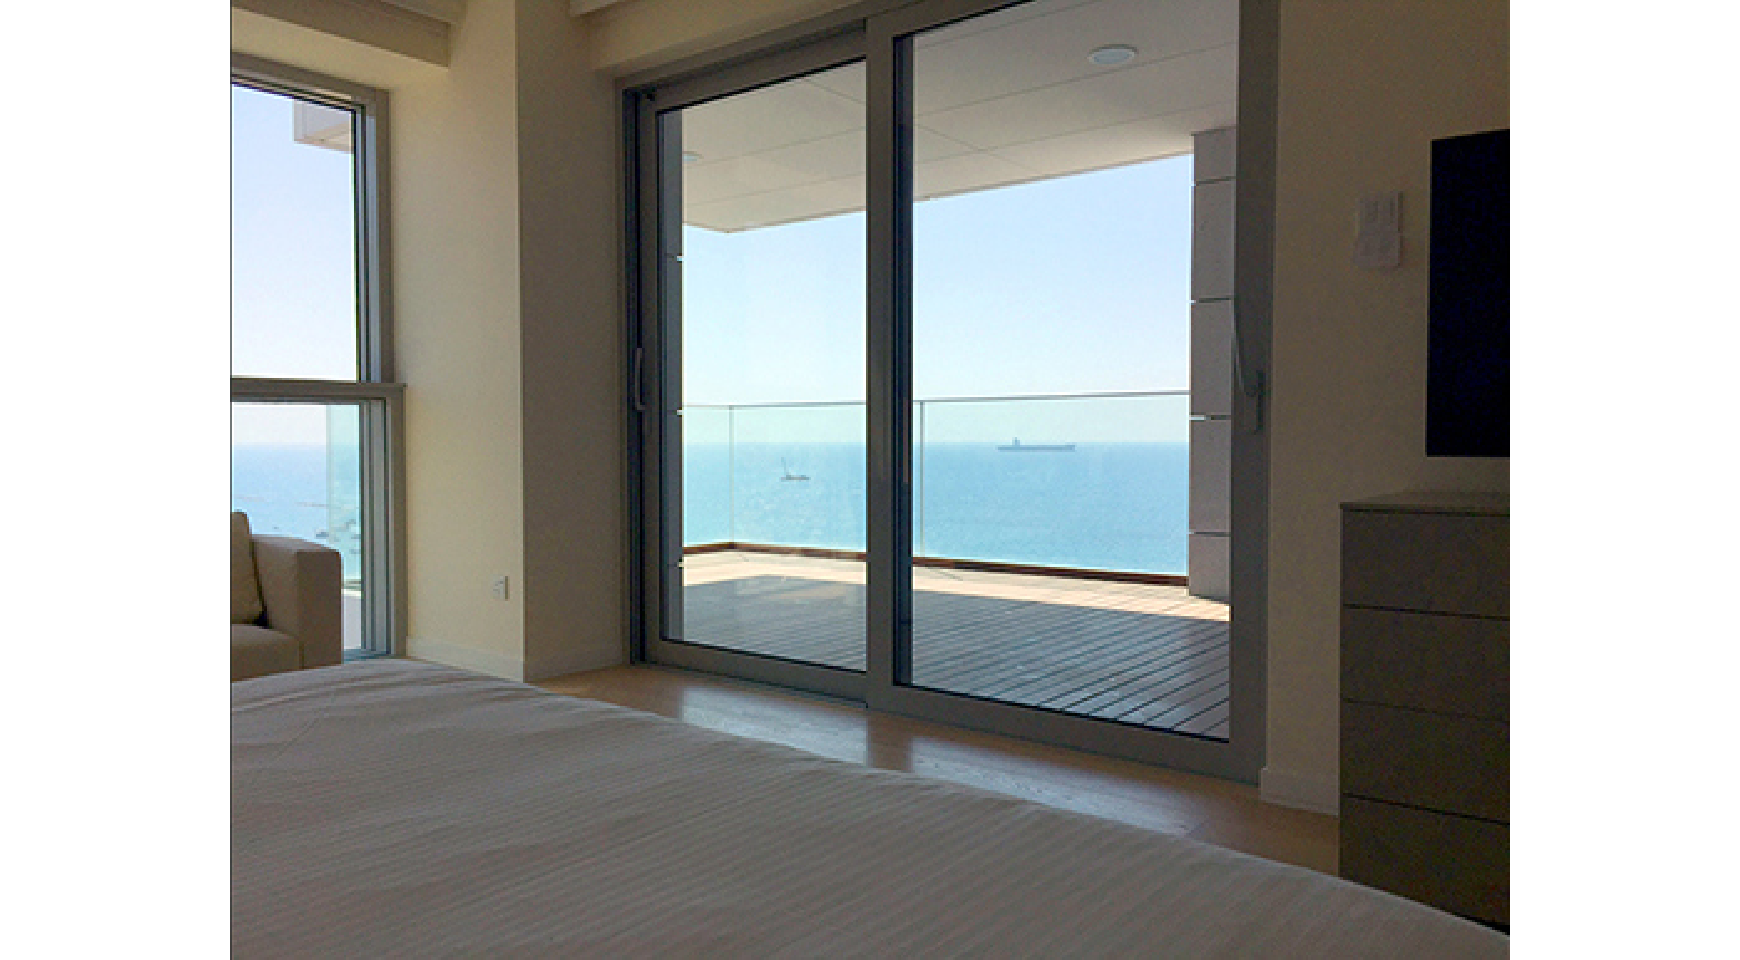 Spacious 3 Bedroom Apartment in an Exclusive Development near the Sea  - 8